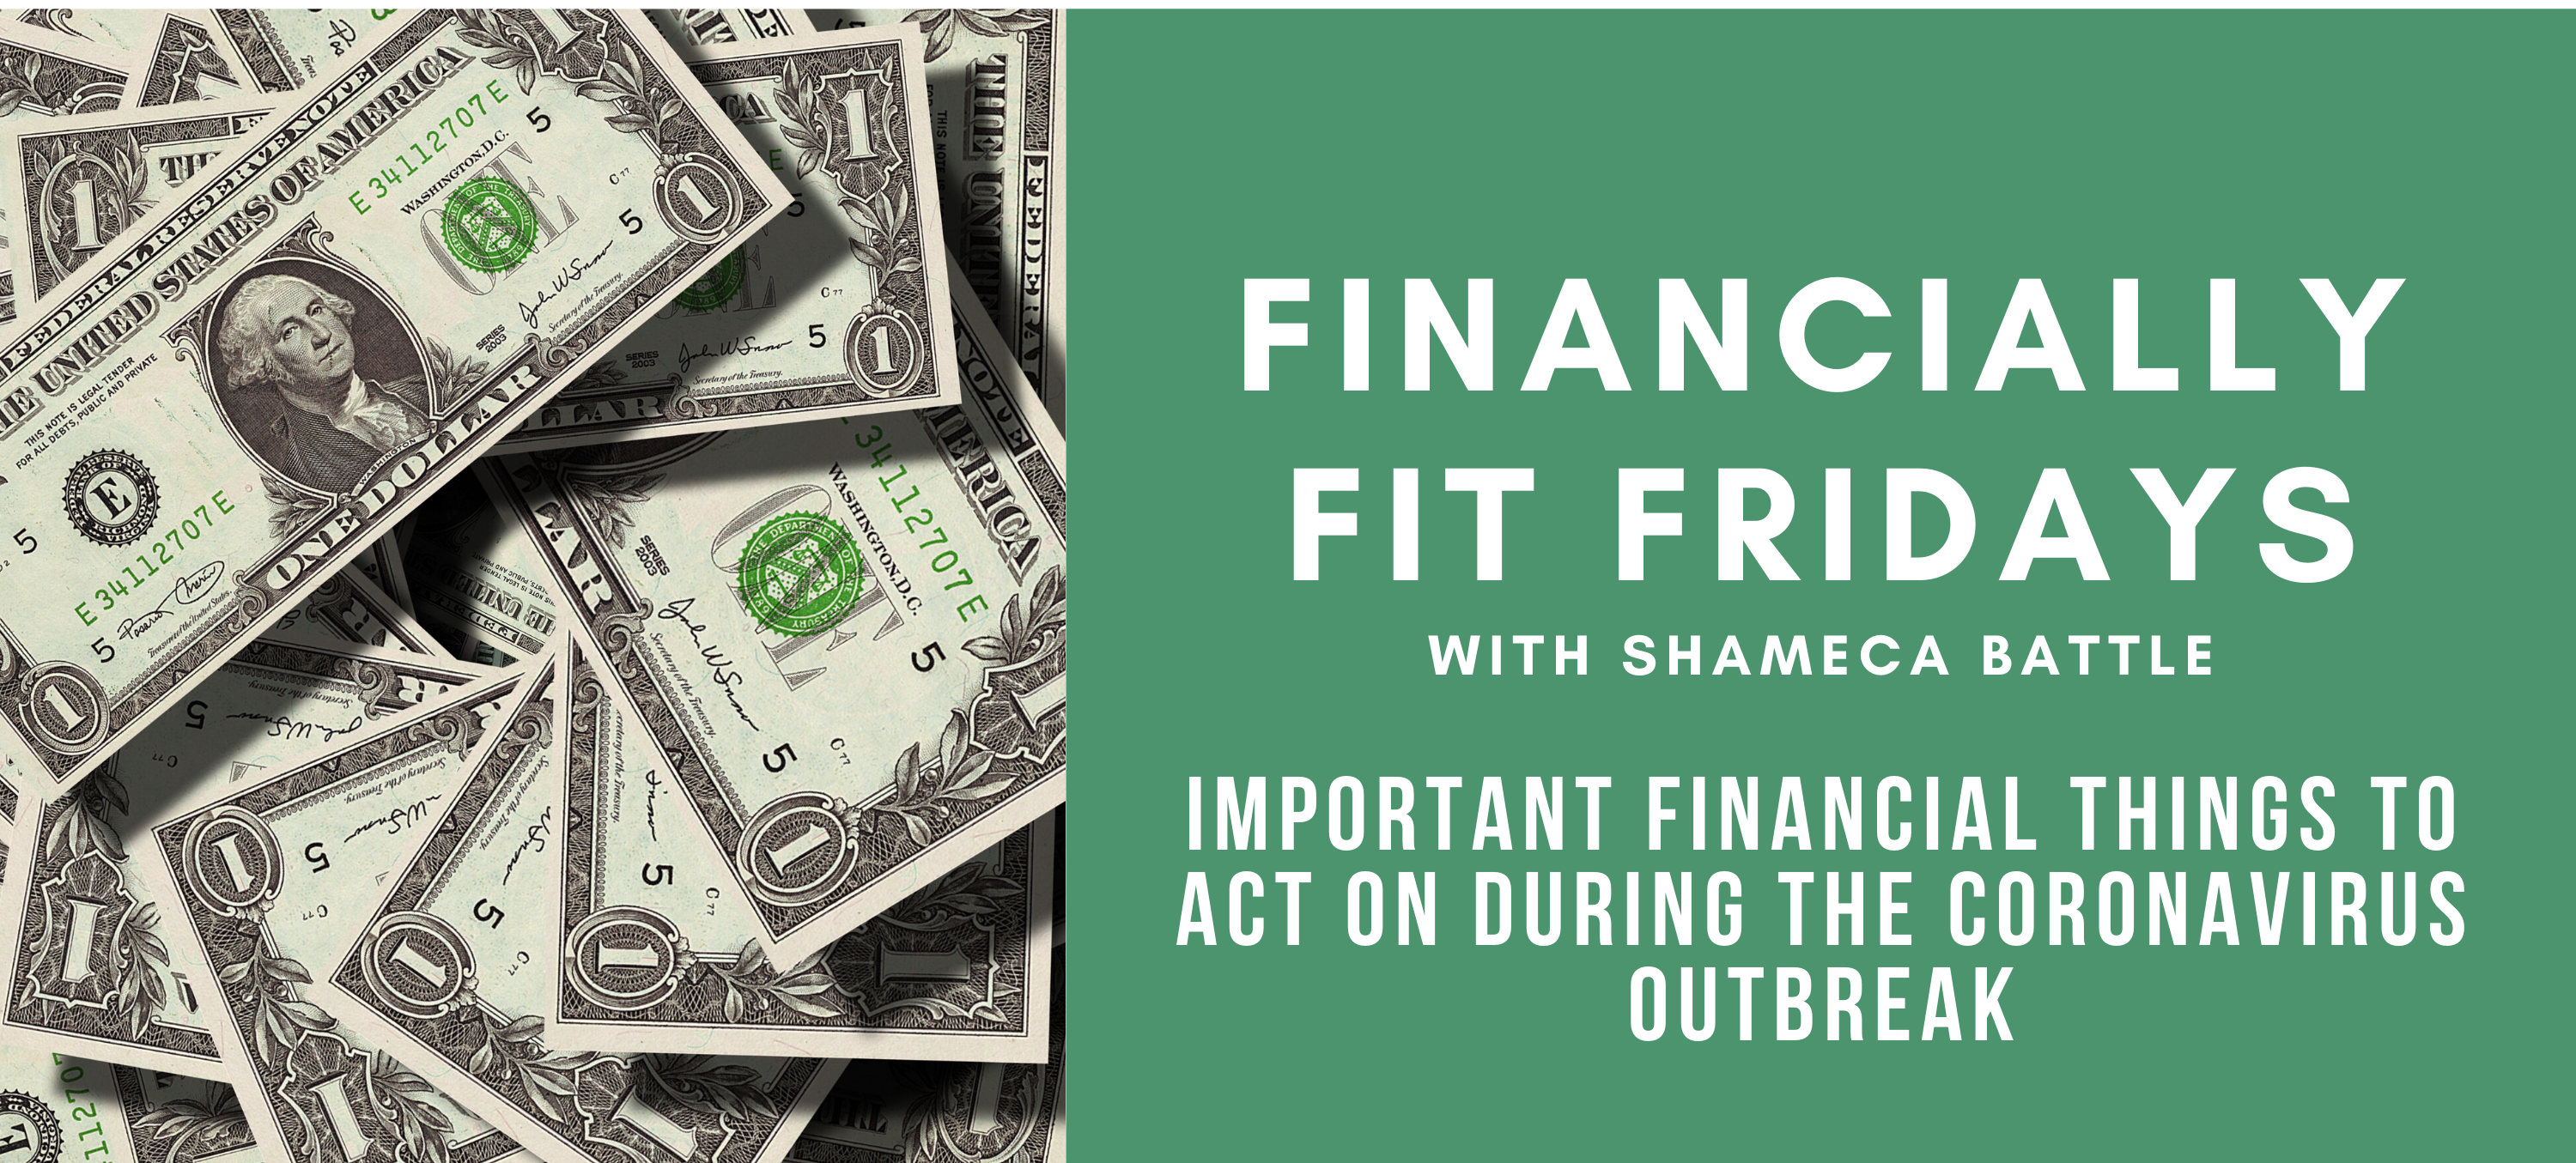 Financially Fit Fridays